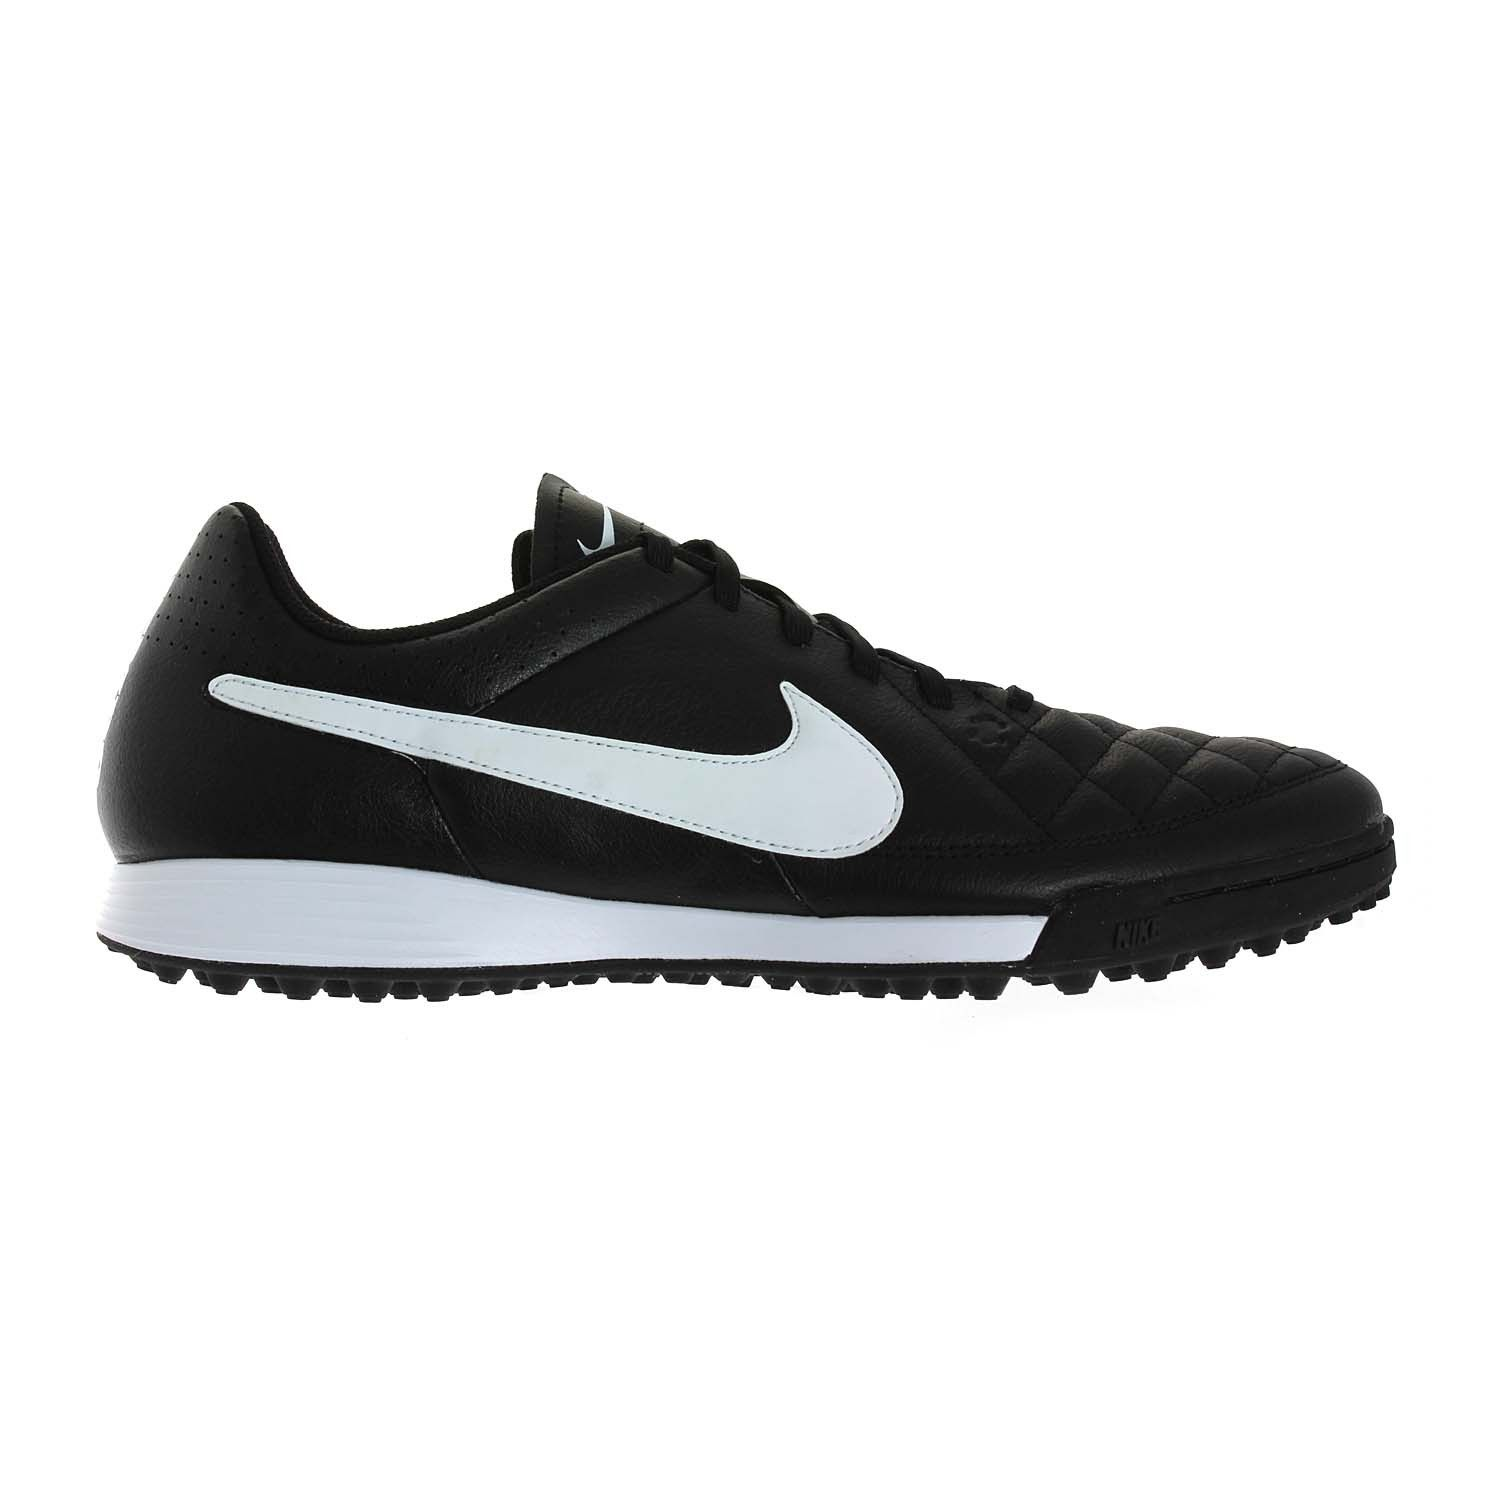 Nike Tiempo Genio Leather TF (631284-010)